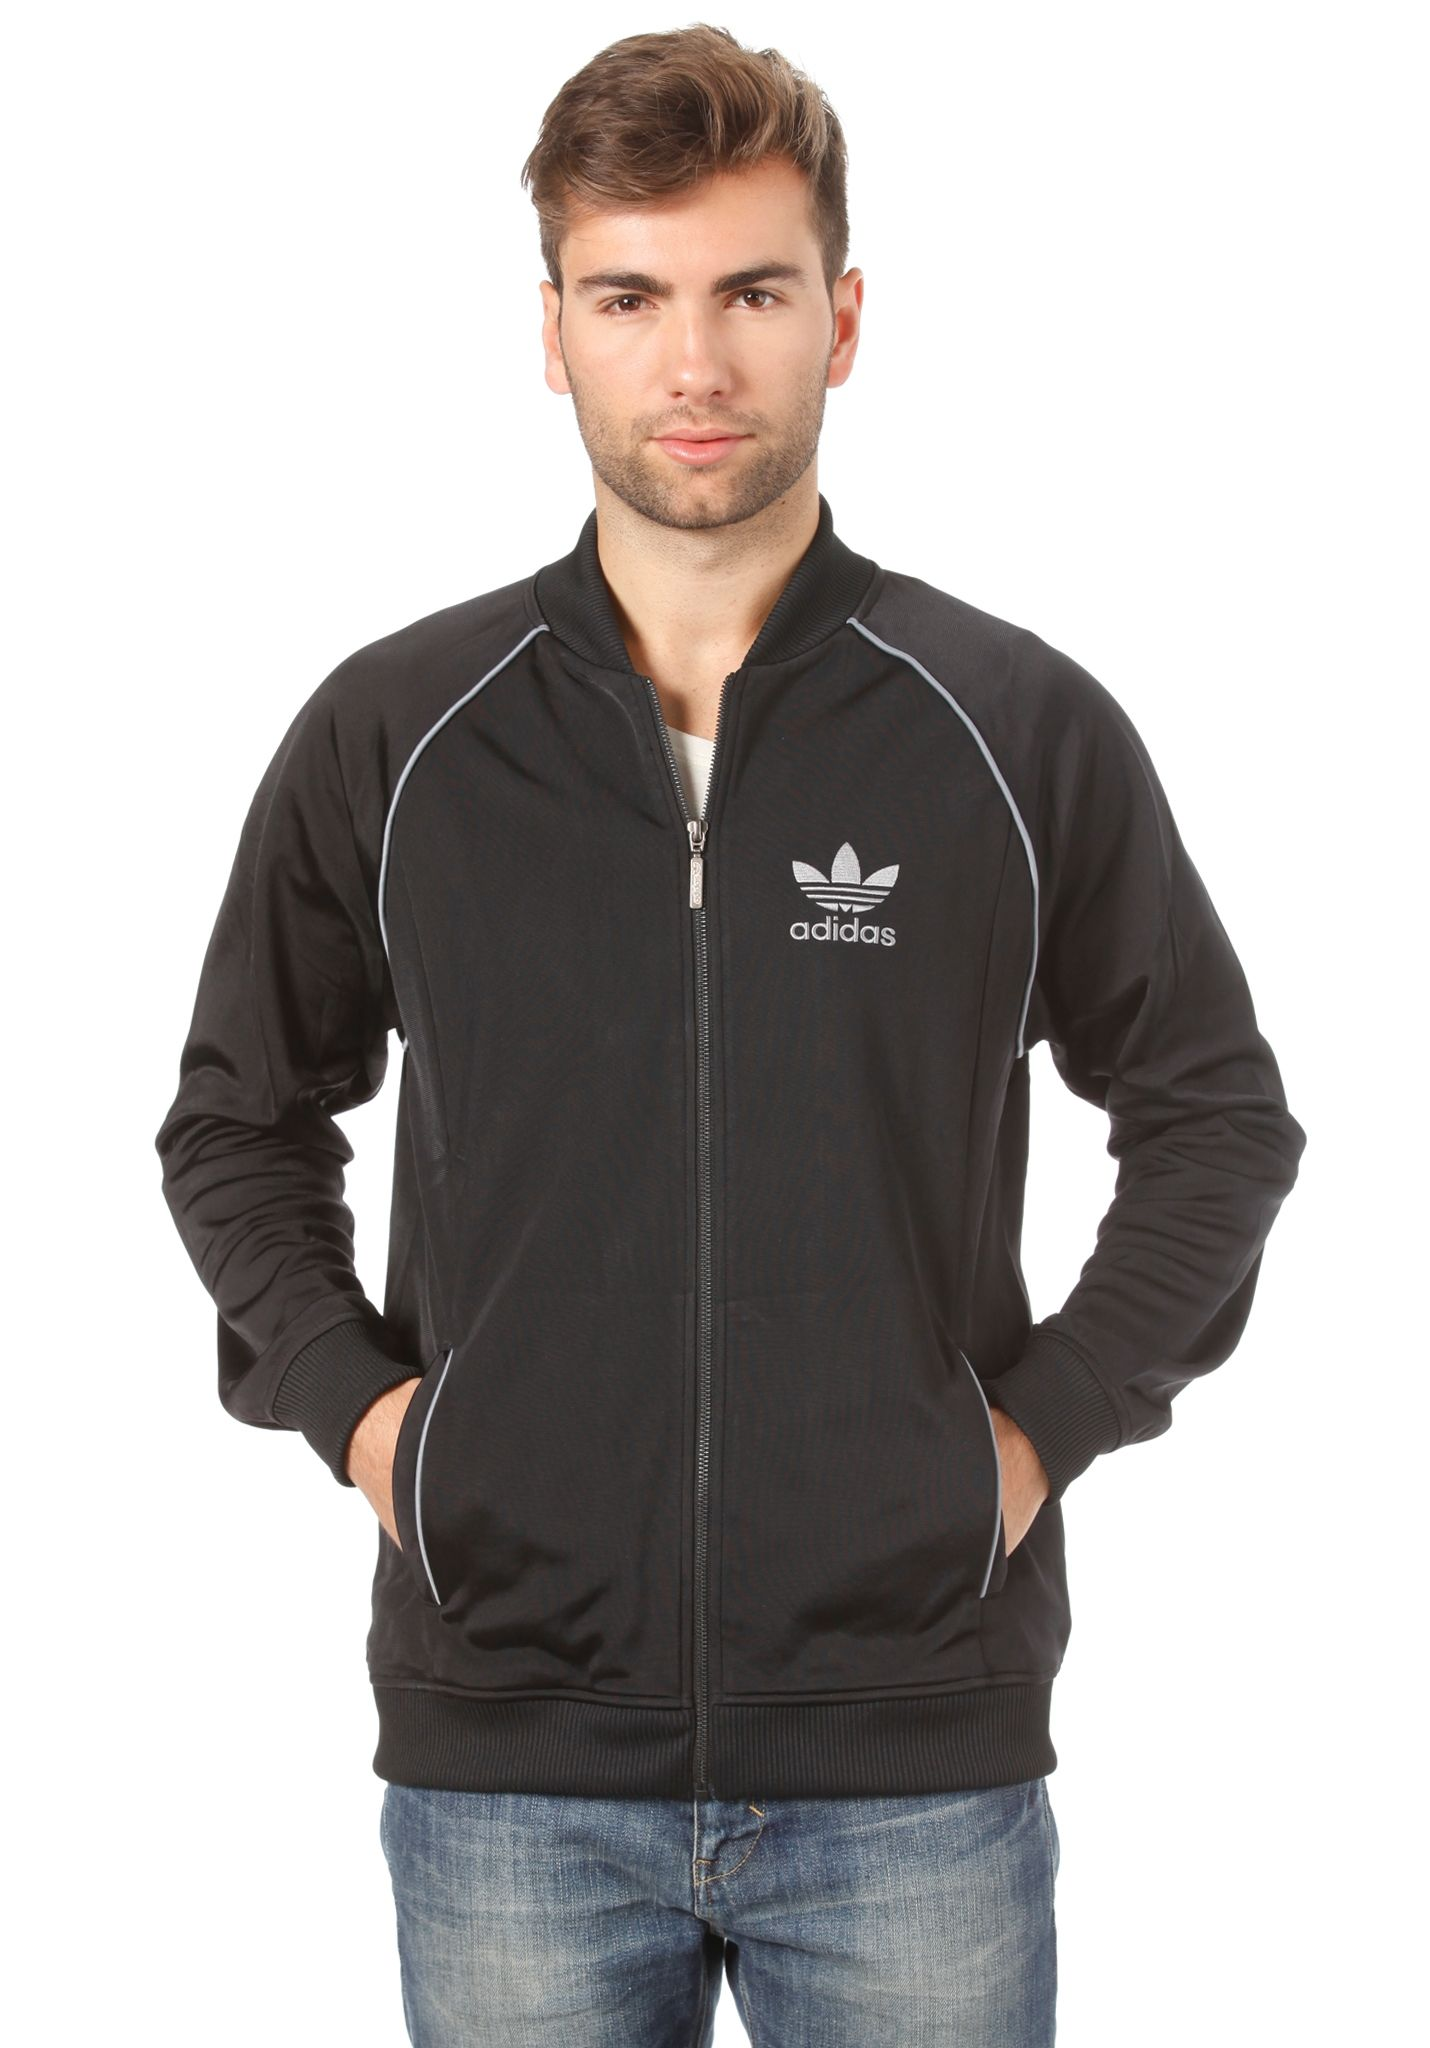 Superstar Herren Jacket Für Originals Adidas Track Top Sweatjacke TpT56vq